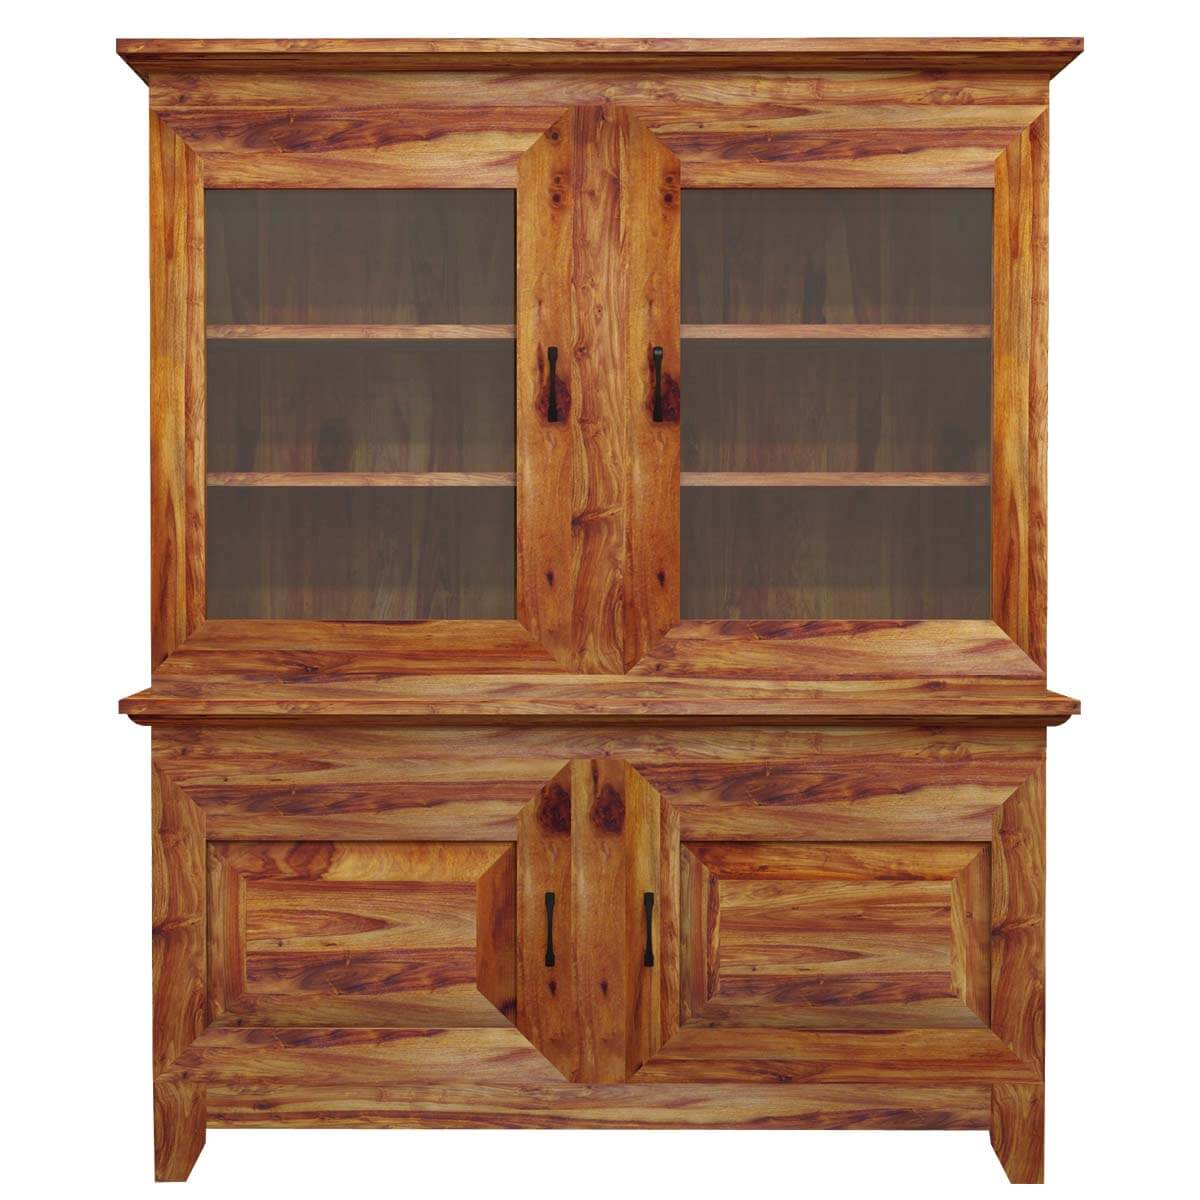 Superb img of  Hutch Sierra Nevada Traditional Glass Door Solid Wood Hutch & Buffet with #B28C19 color and 1200x1200 pixels